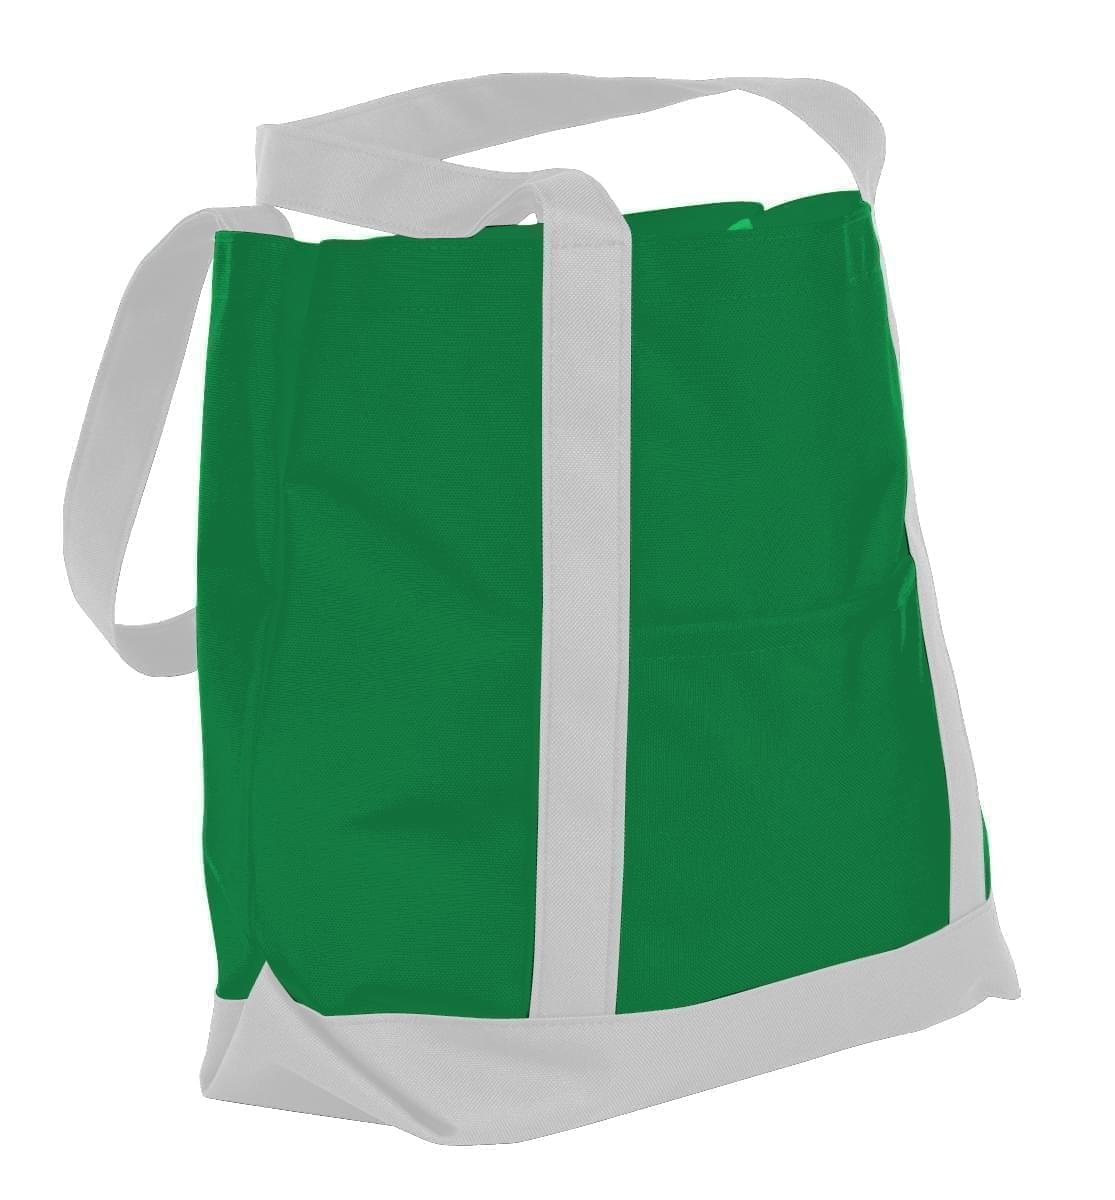 USA Made Nylon Poly Boat Tote Bags, Kelly Green-White, XAACL1UATP